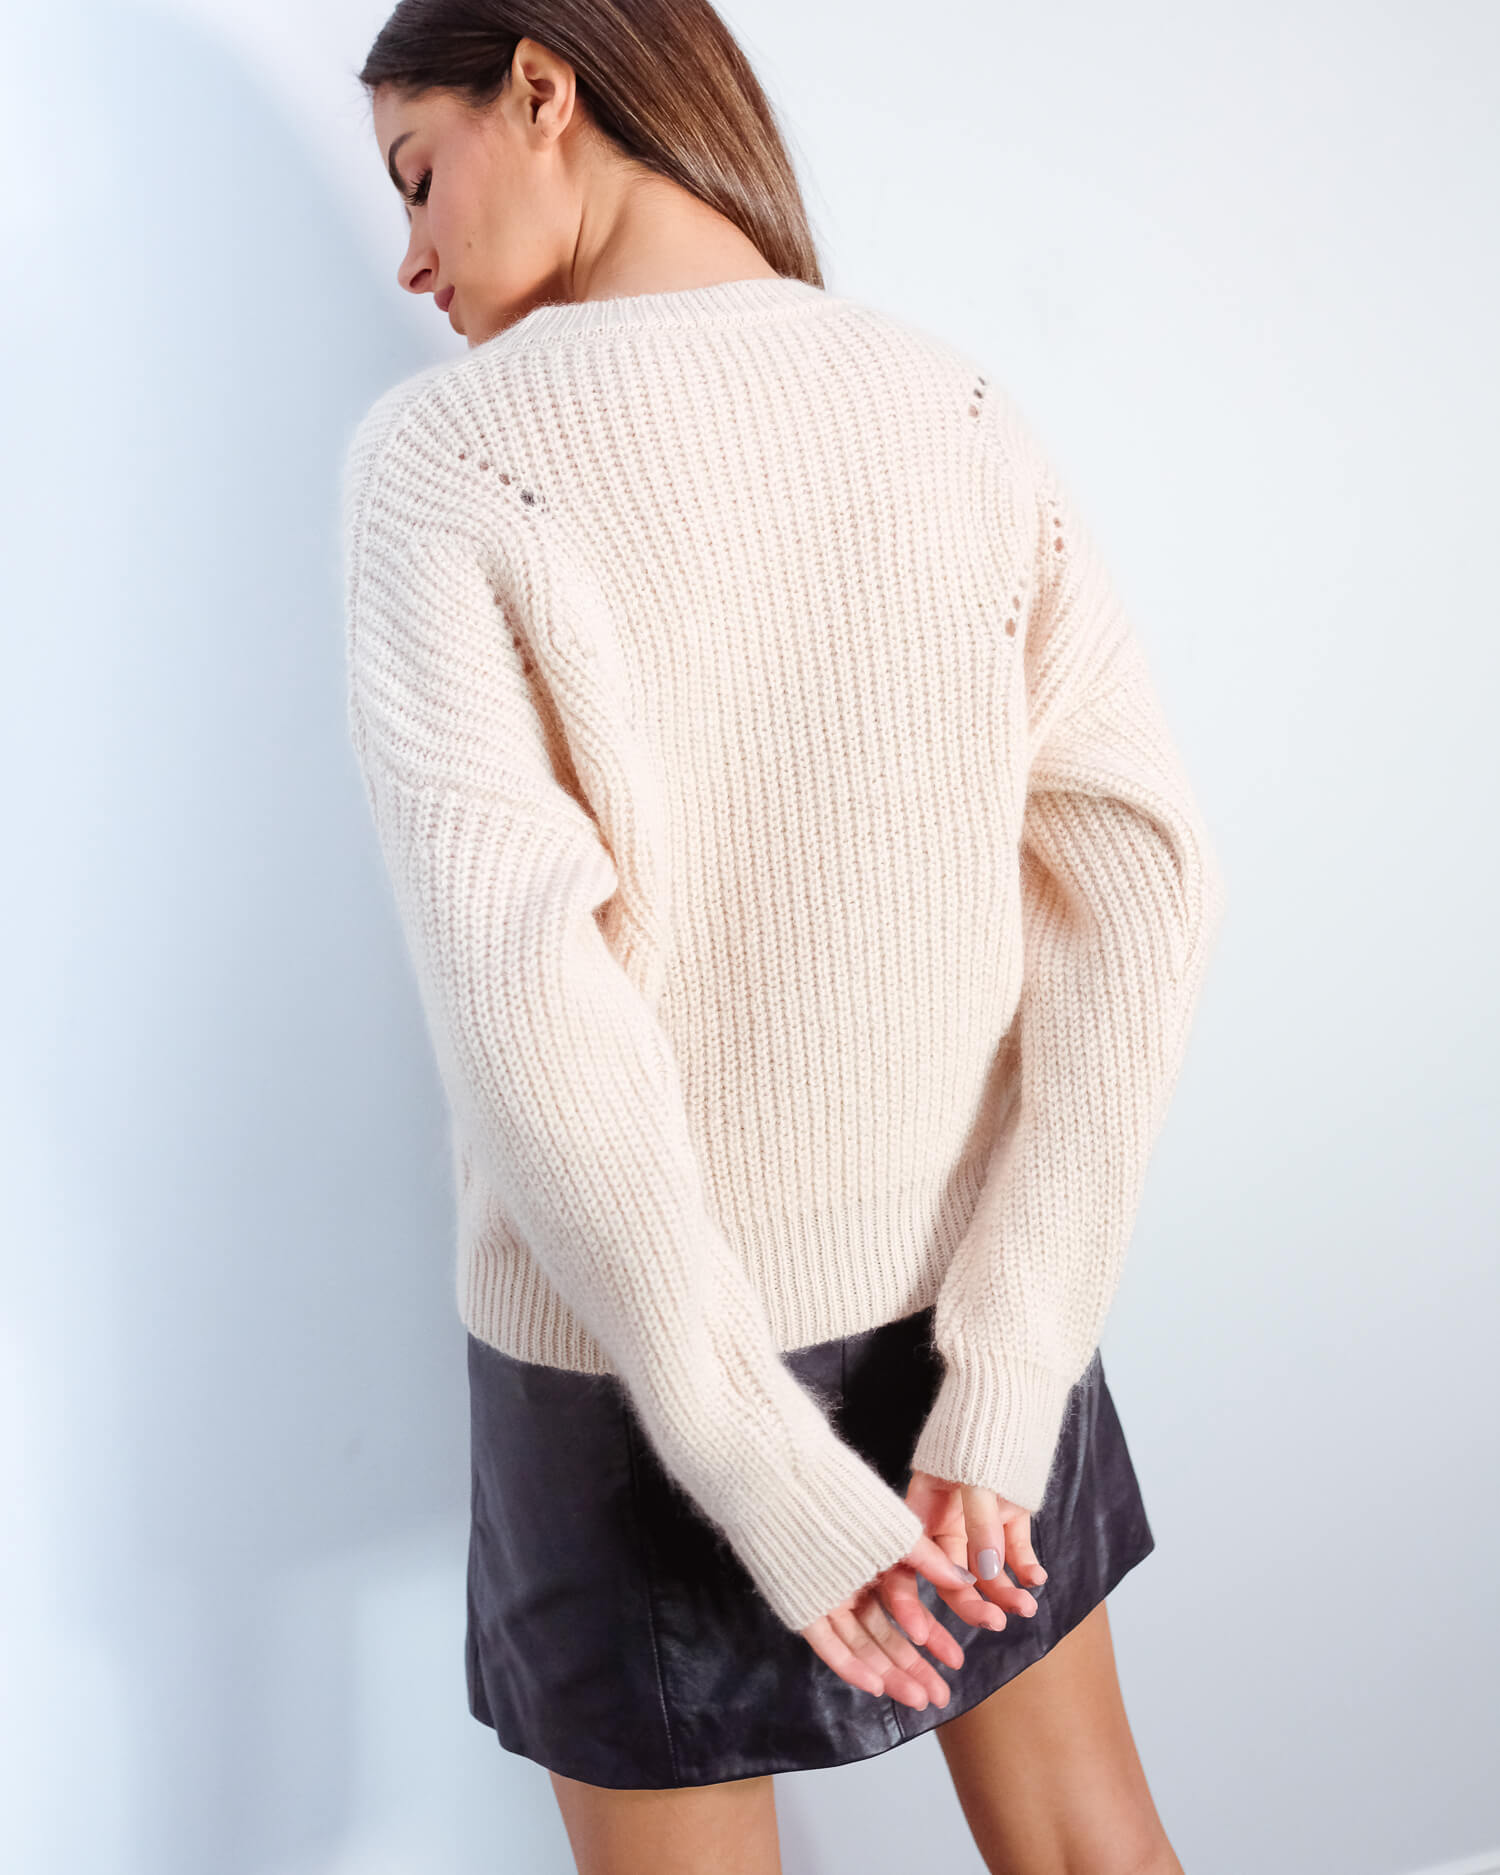 EA Vally knit in white